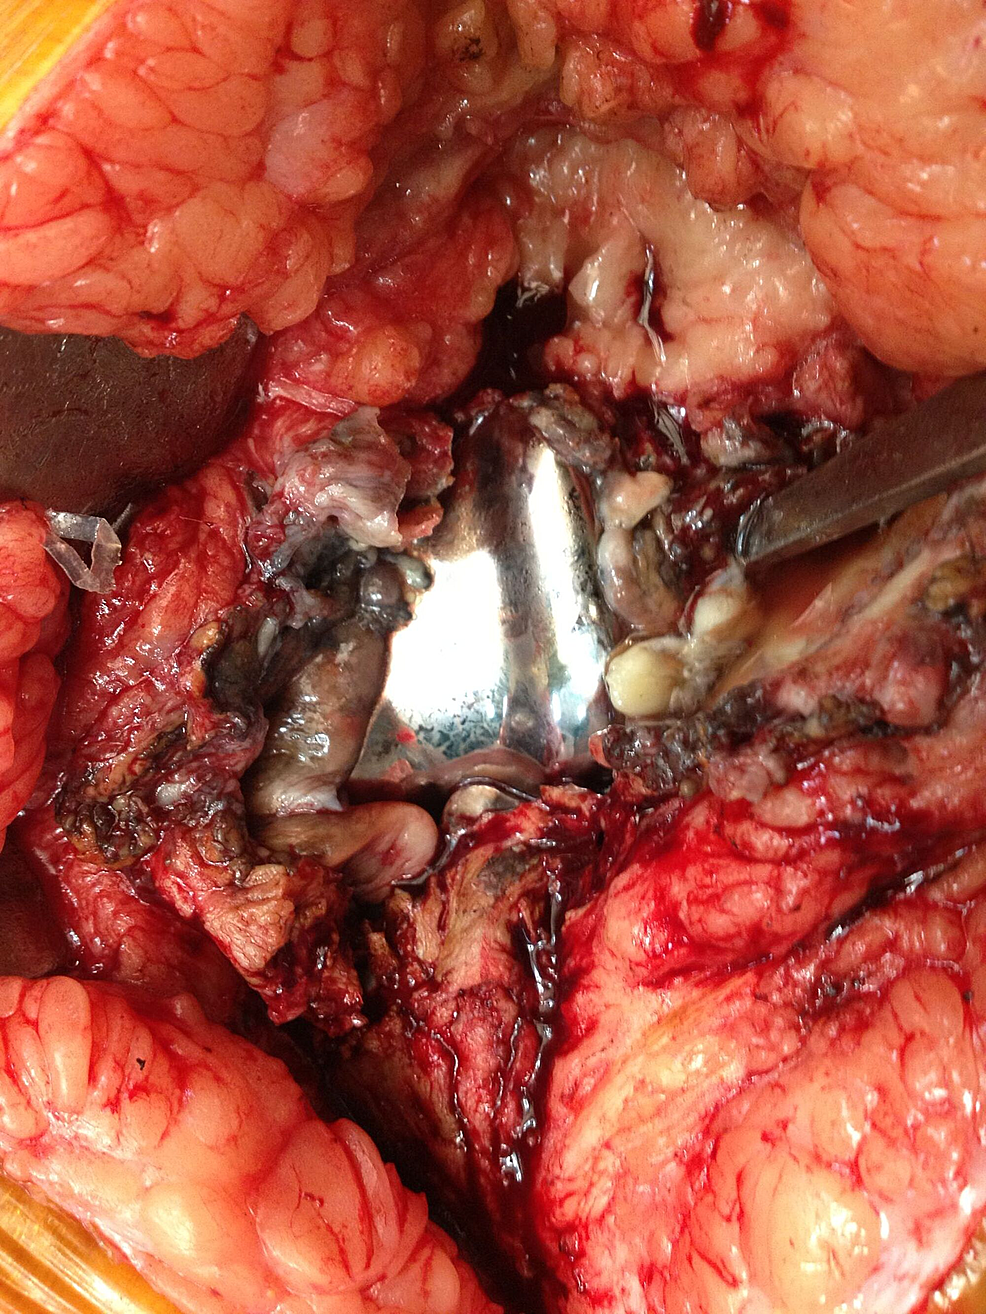 Intraoperative-picture-showing-implants-from-the-right-knee-with-extensive-debris-and-significant-wear-of-the-polyethylene-insert.